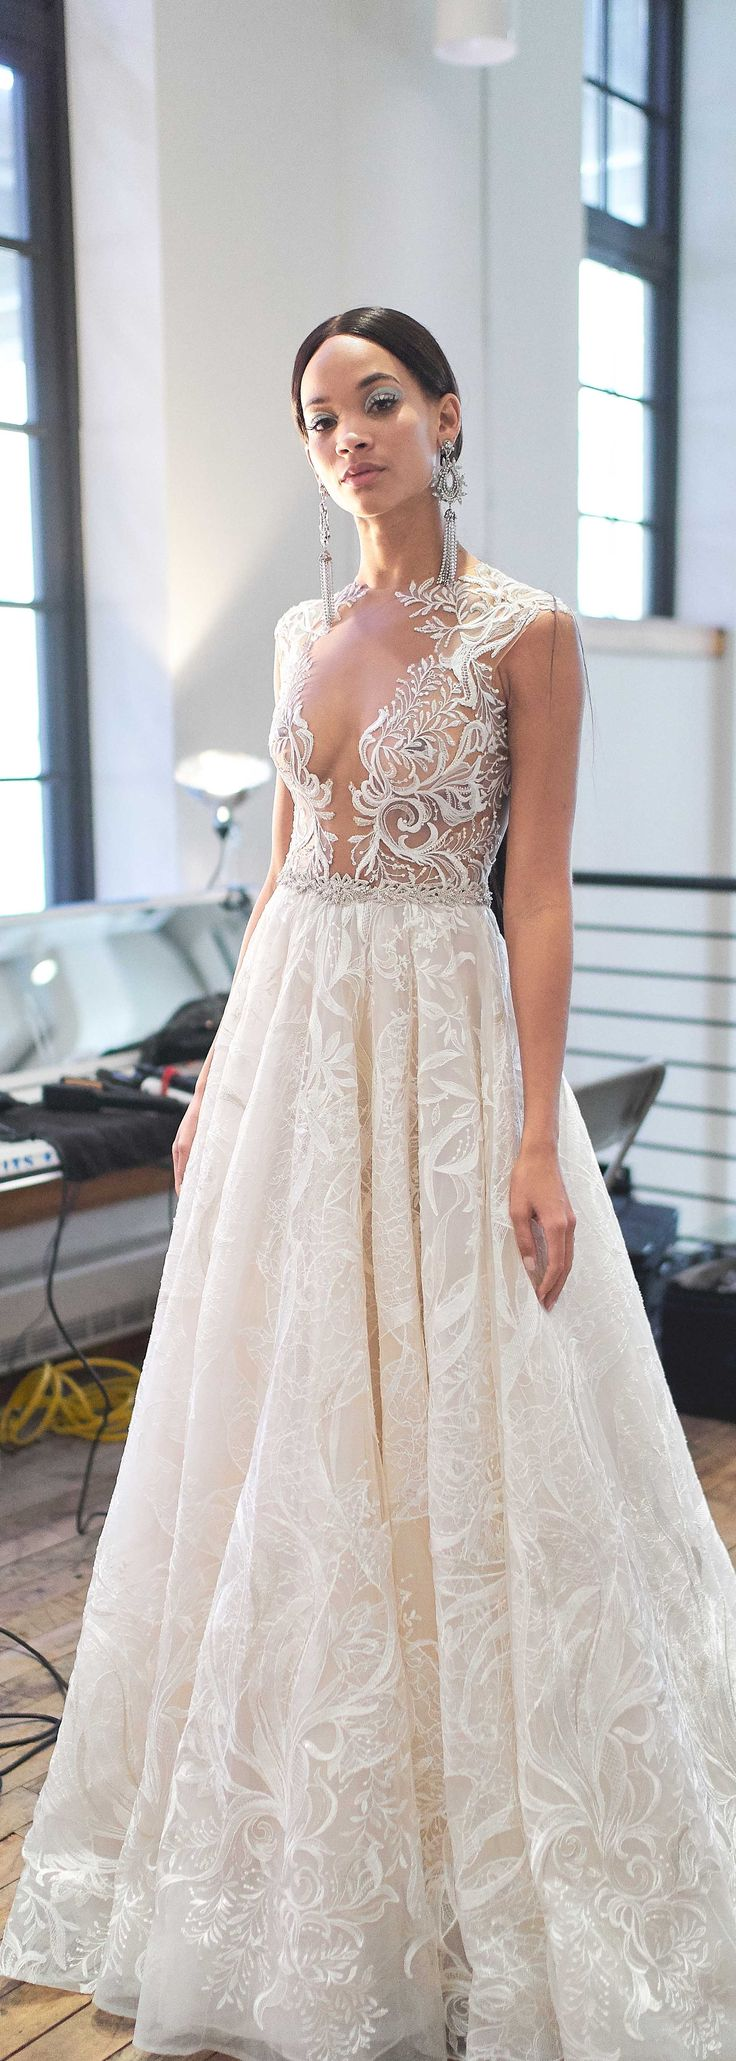 Lace jacket over wedding dress january 2019  best Dress ideas images on Pinterest  Ball dresses Ball gown